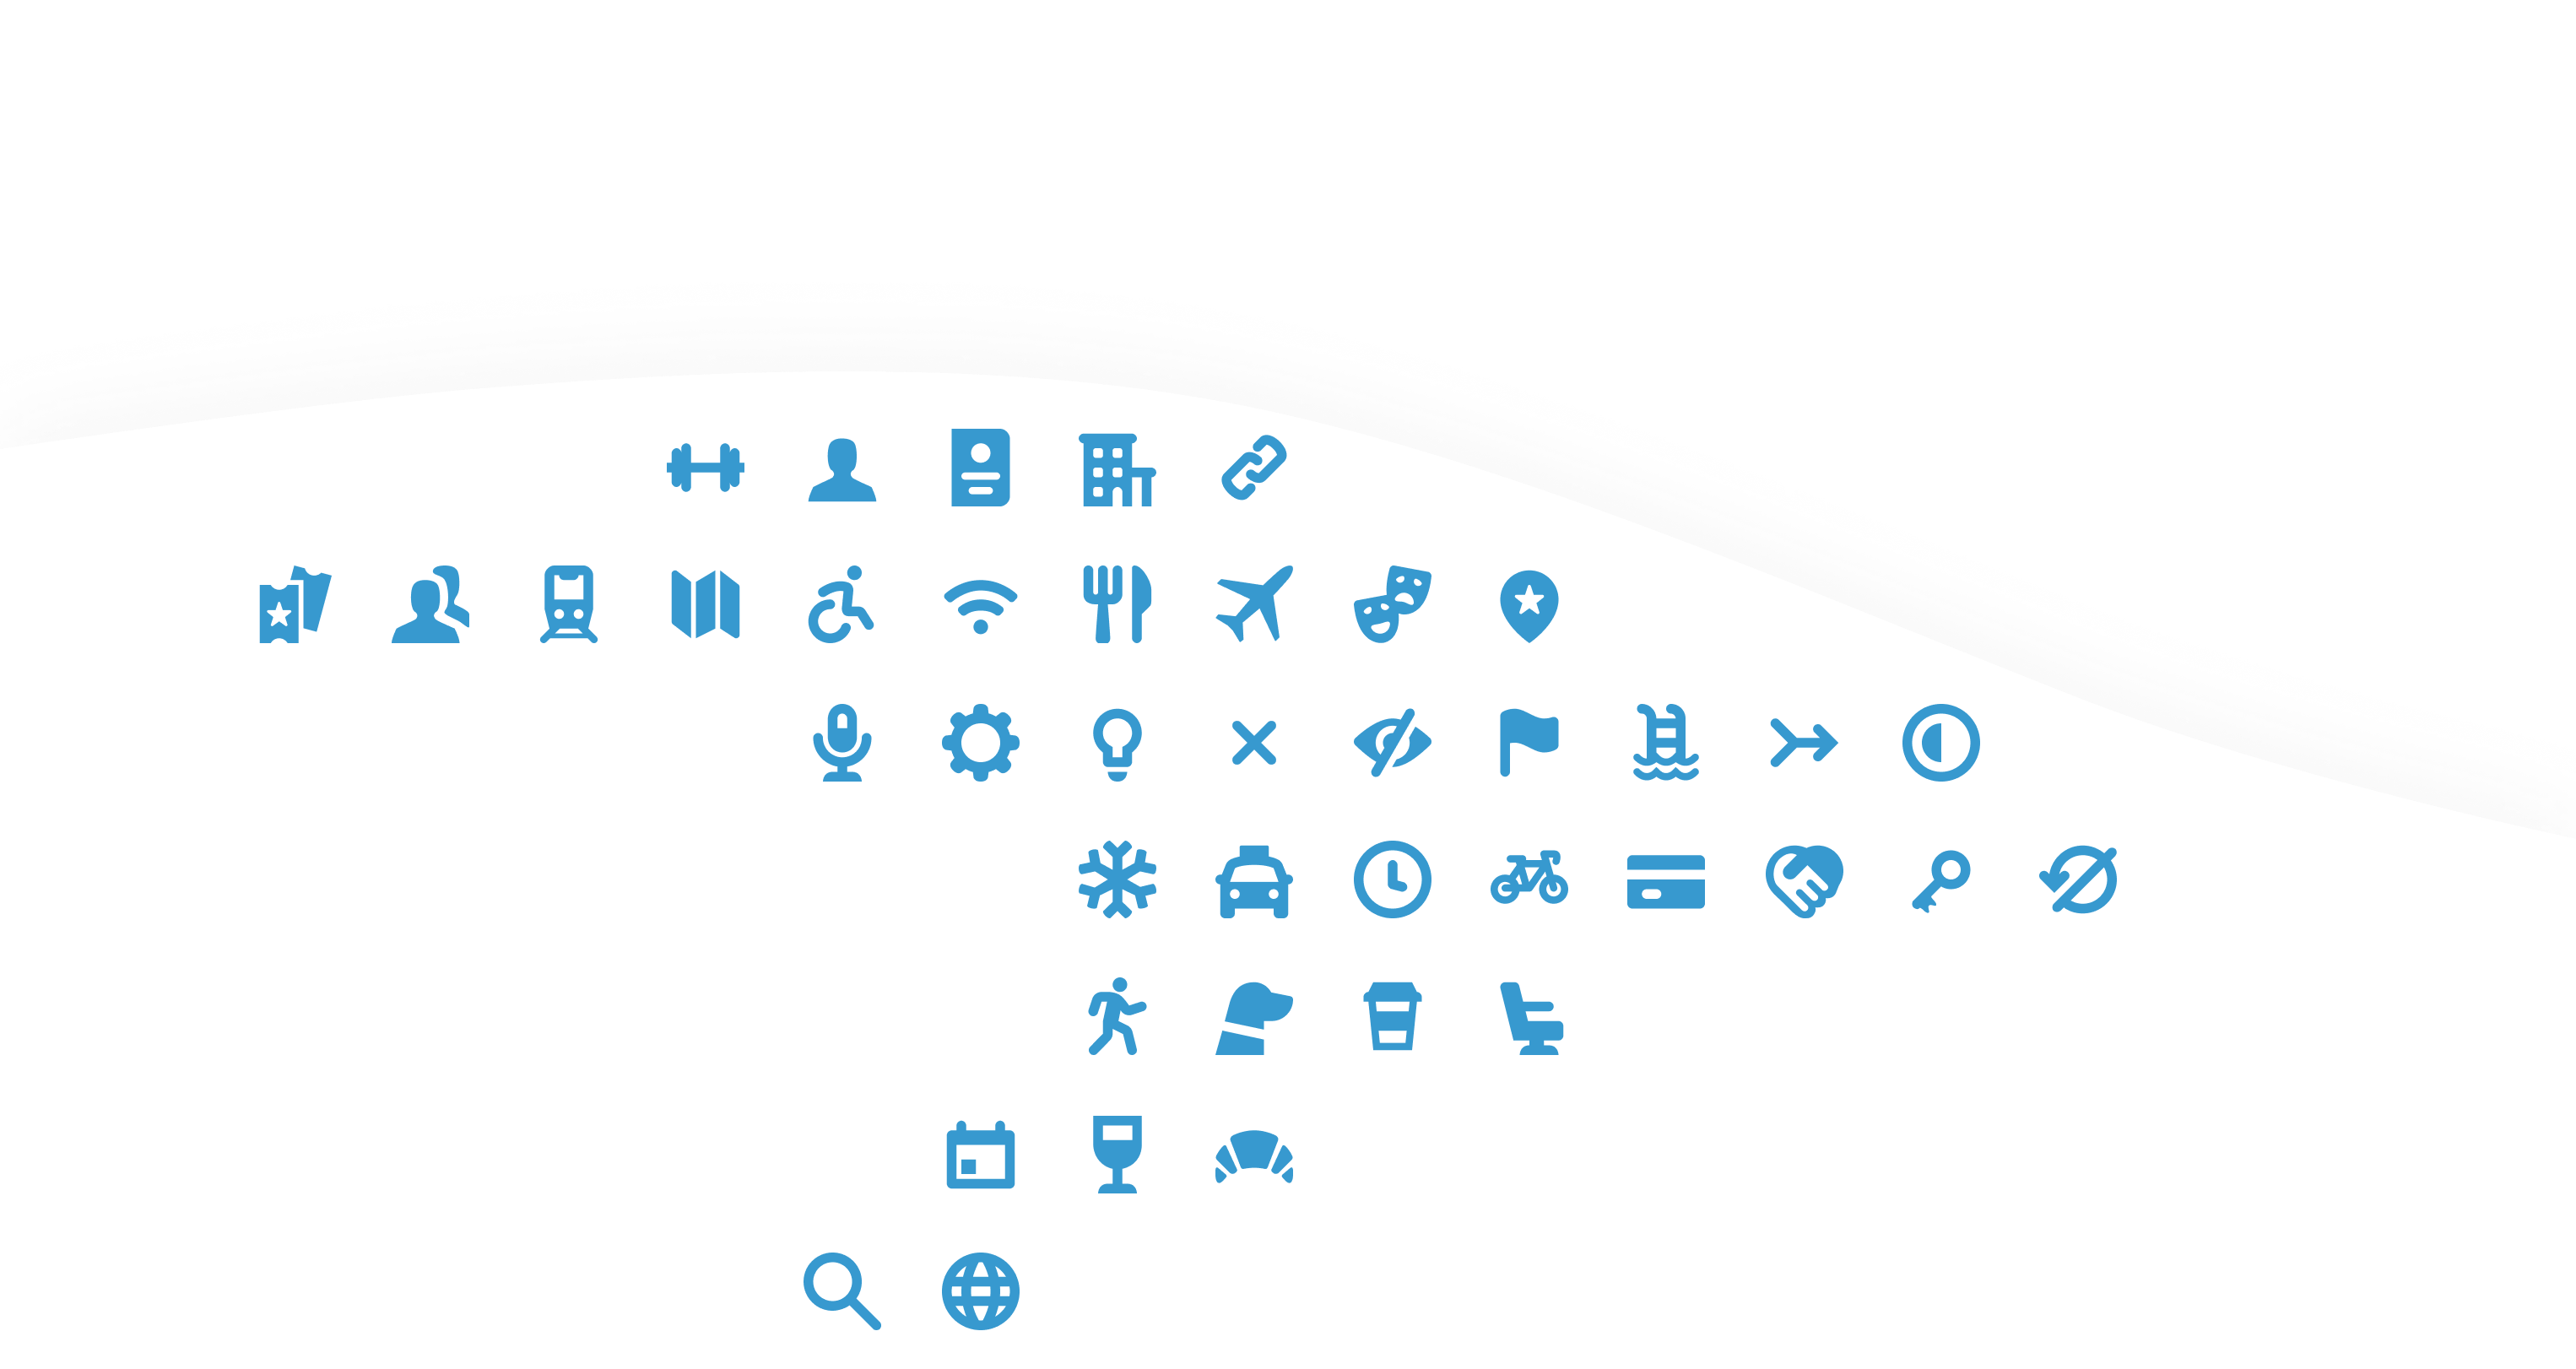 Layout of icons that form the shape of the Egencia logo